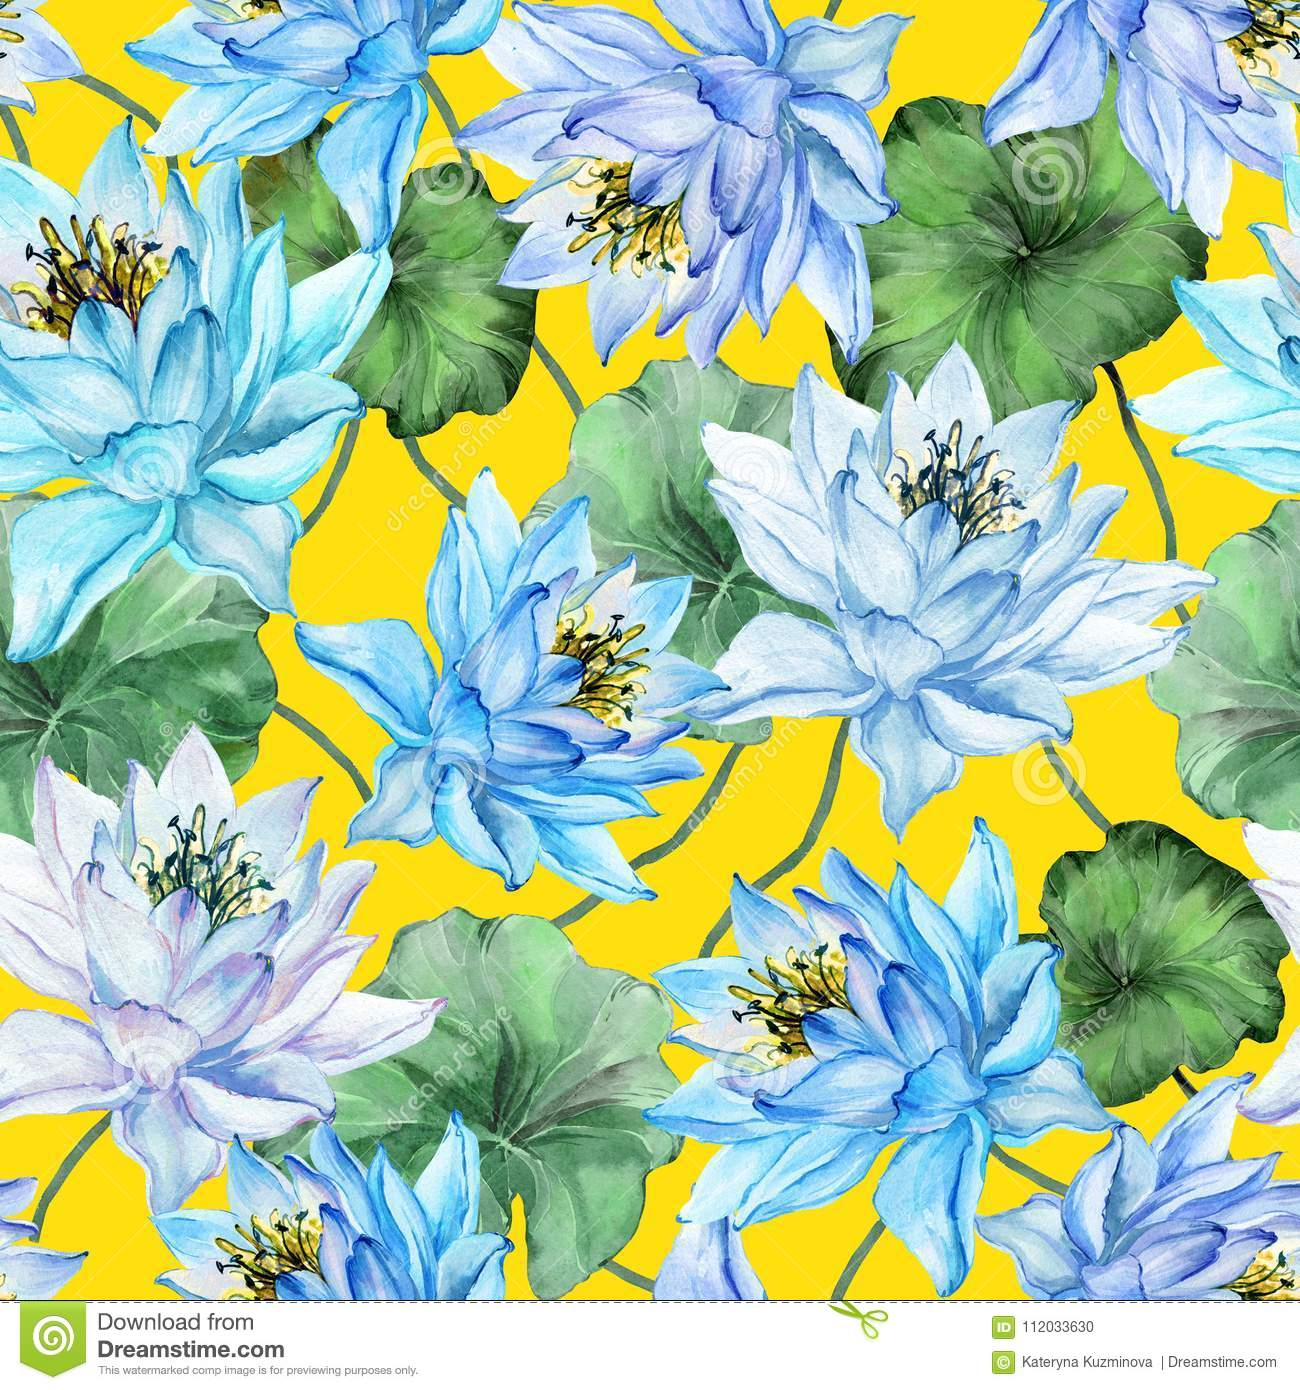 Beautiful Floral Seamless Pattern Large Blue Lotus Flowers With Green Leaves On Yellow Background